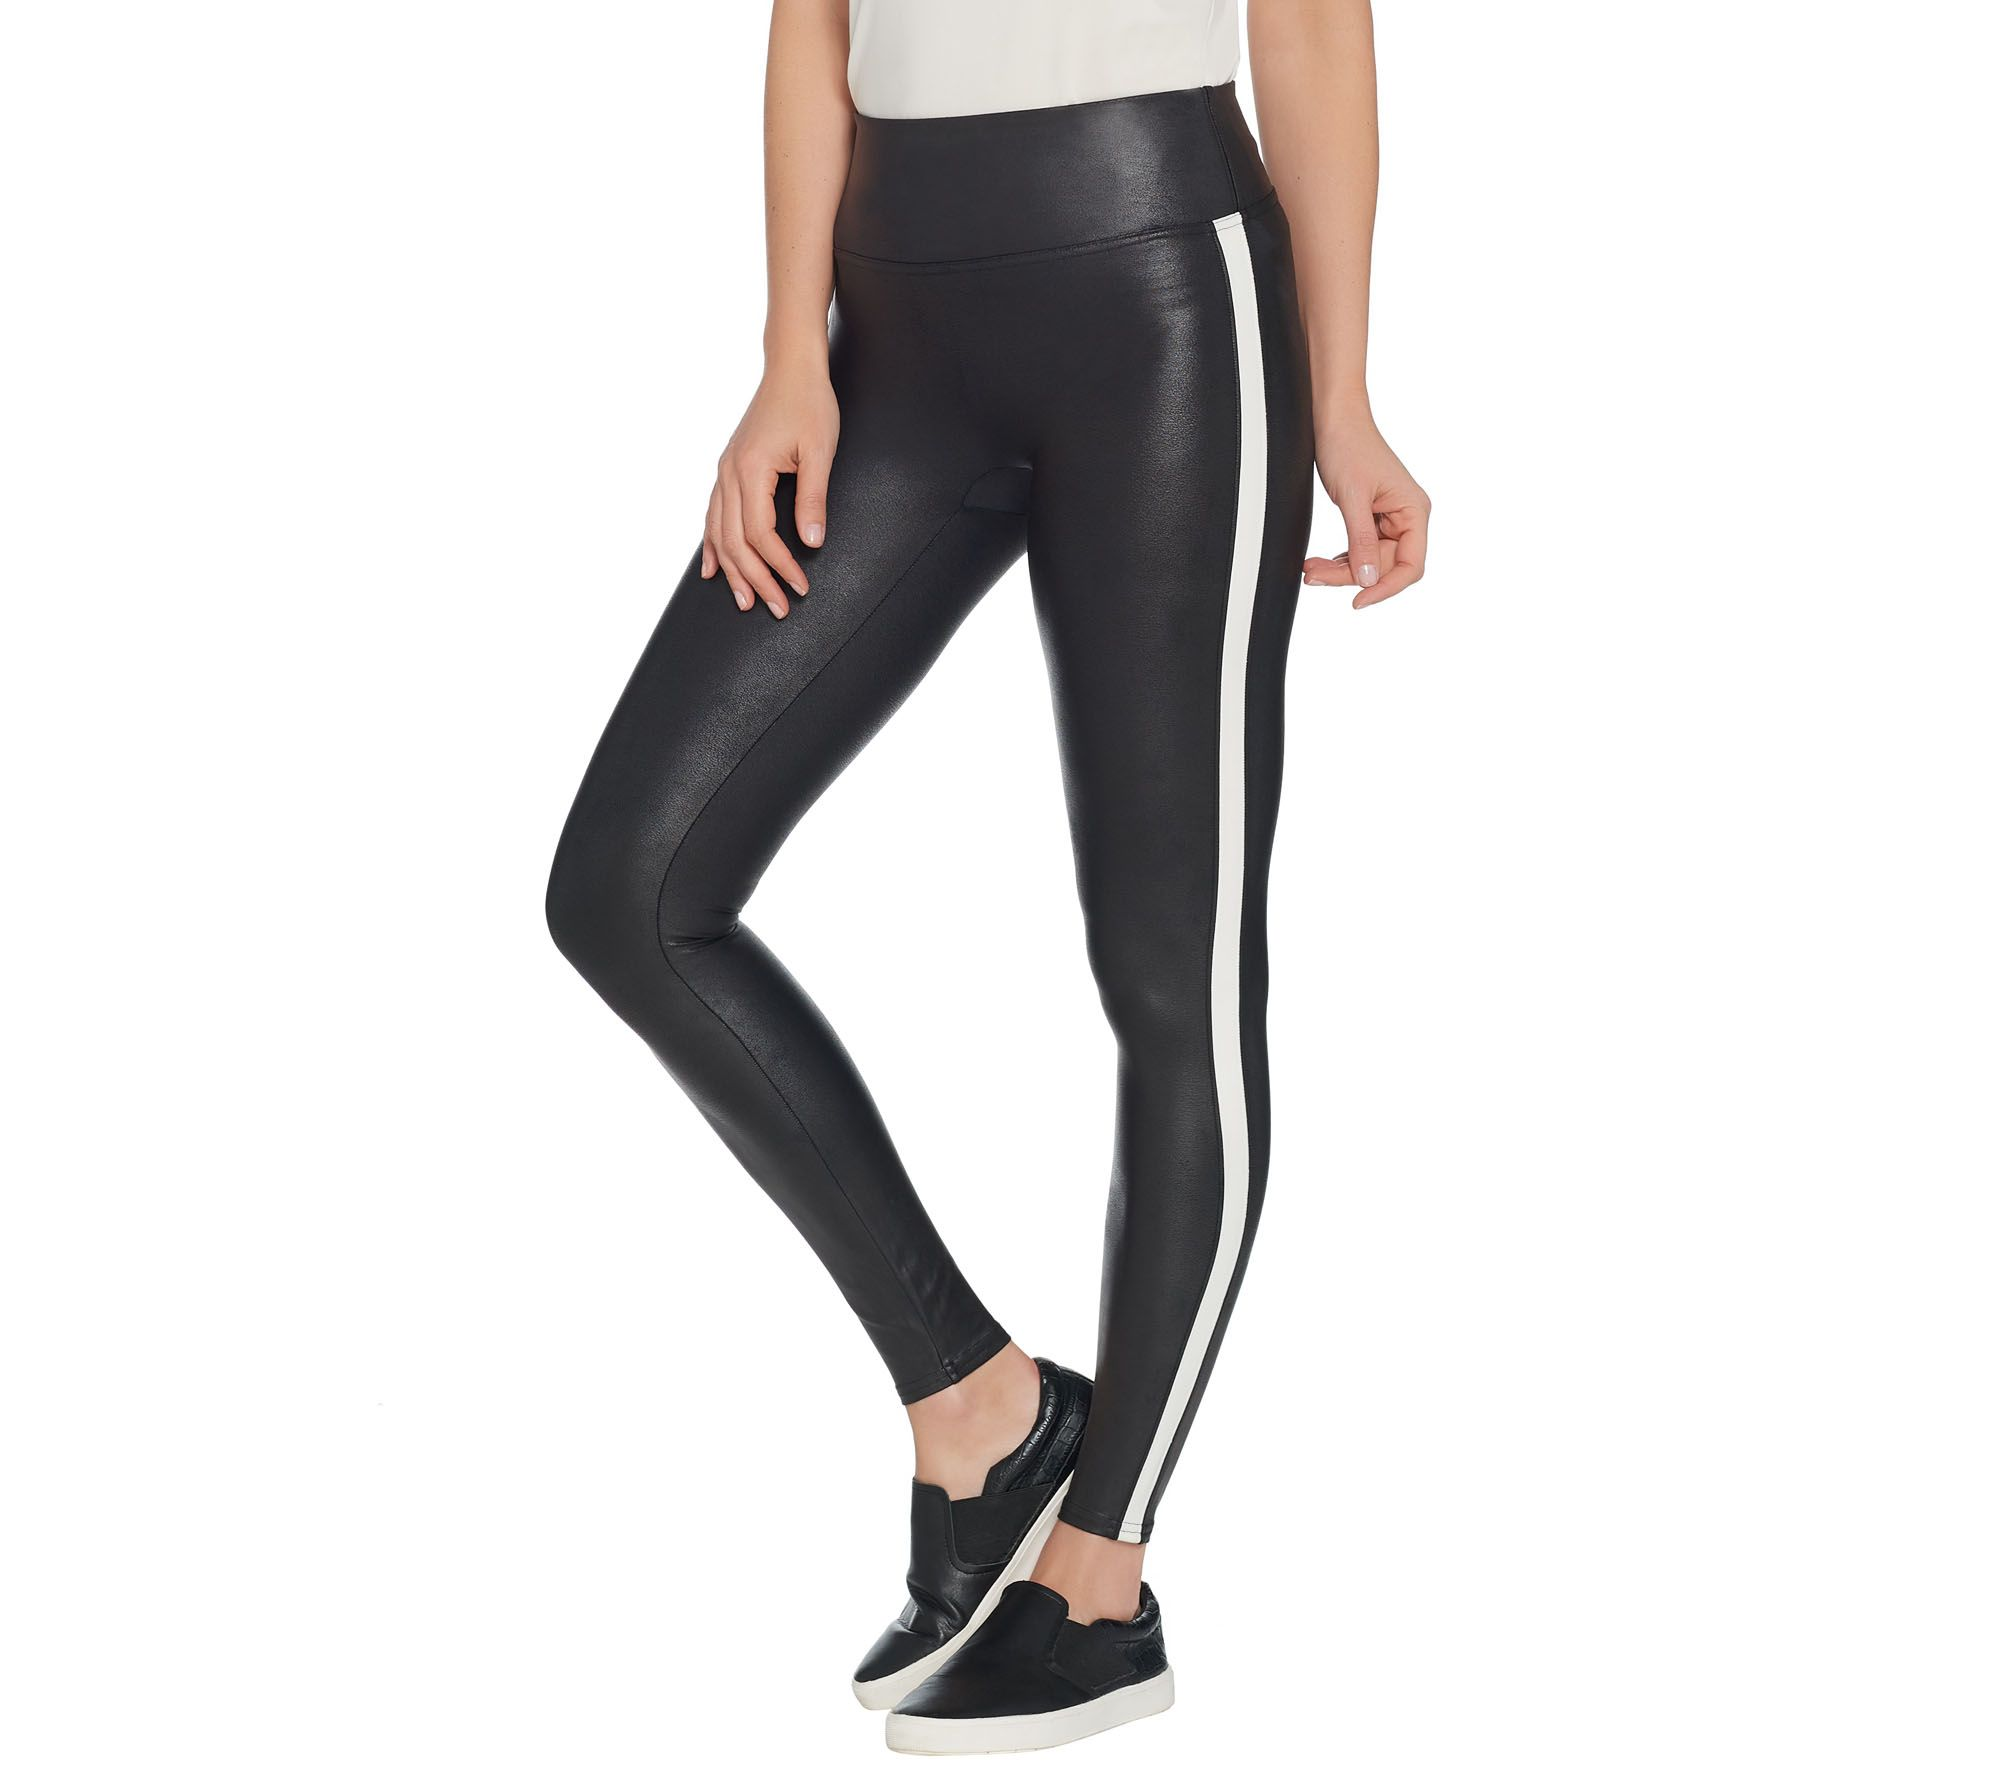 05a9711919ac1 Spanx Faux Leather Black and White Striped Leggings - Page 1 — QVC.com